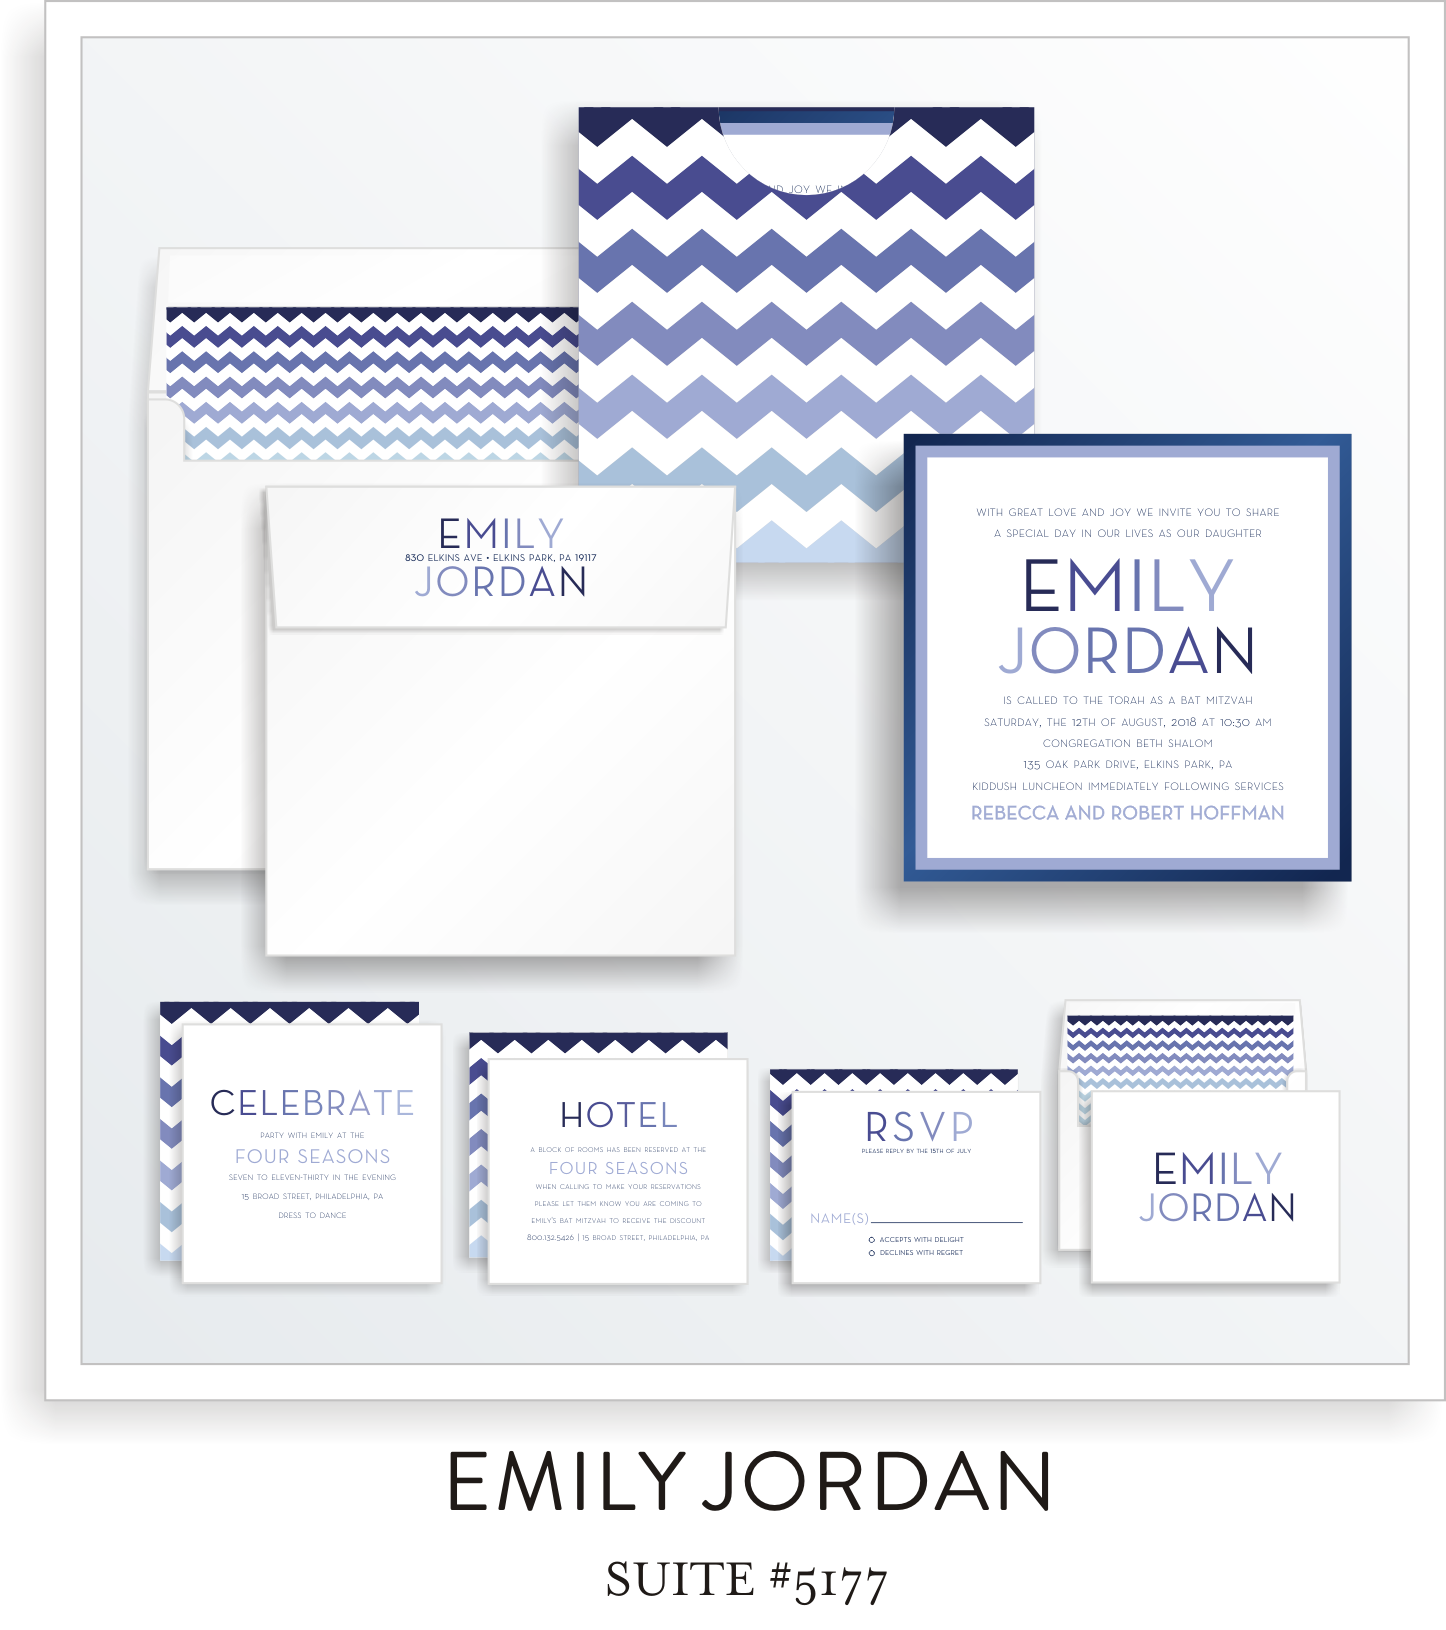 Bat Mitzvah Invitation Suite 5177 - Emily Jordan